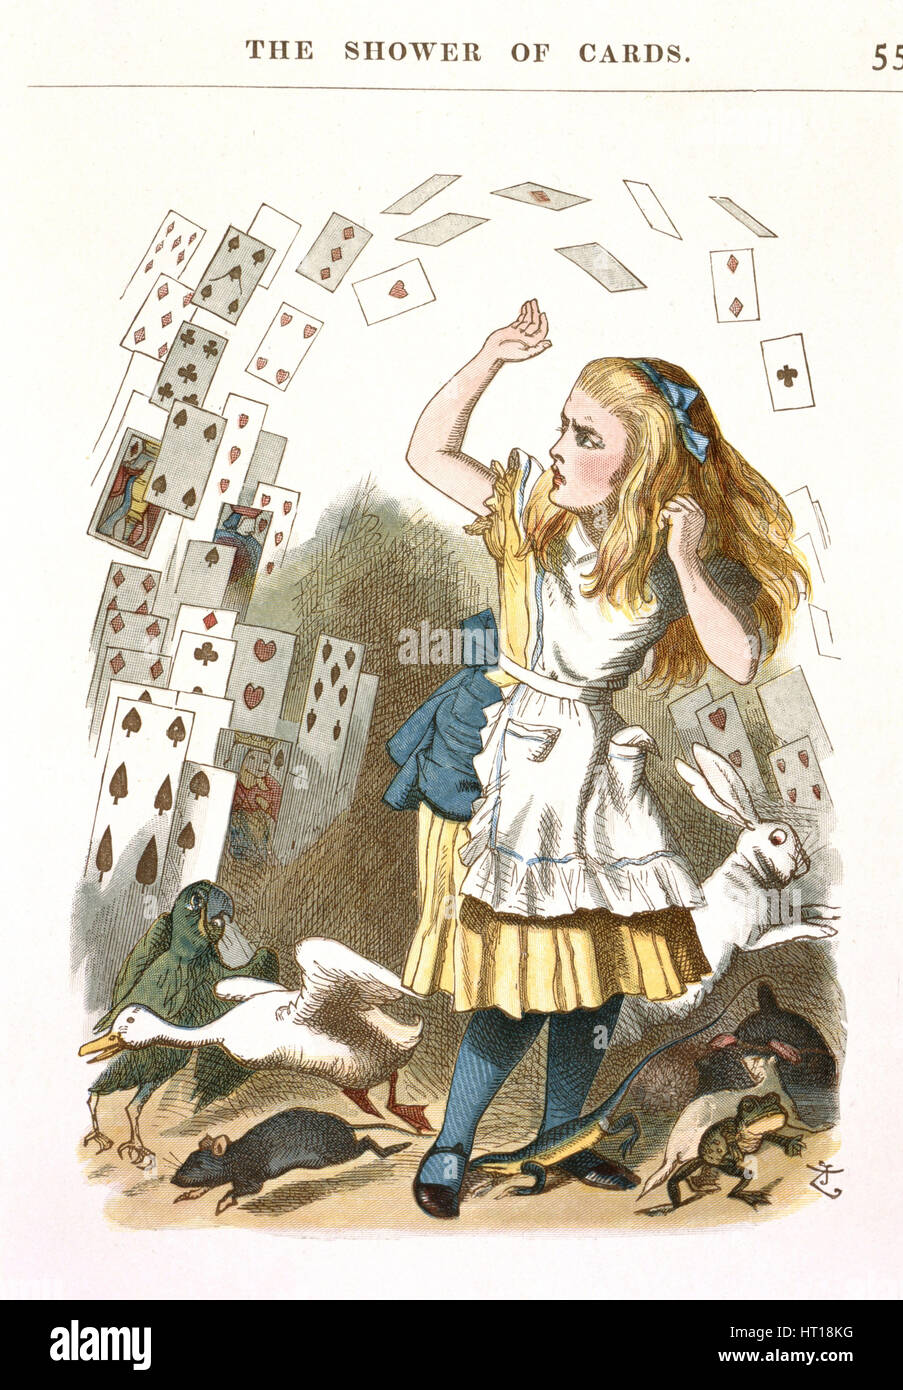 The Shower of Cards. Illustration for Alice in Wonderland by L. Carroll, 1890. Artist: Tenniel, Sir John (1820-1914) - Stock Image